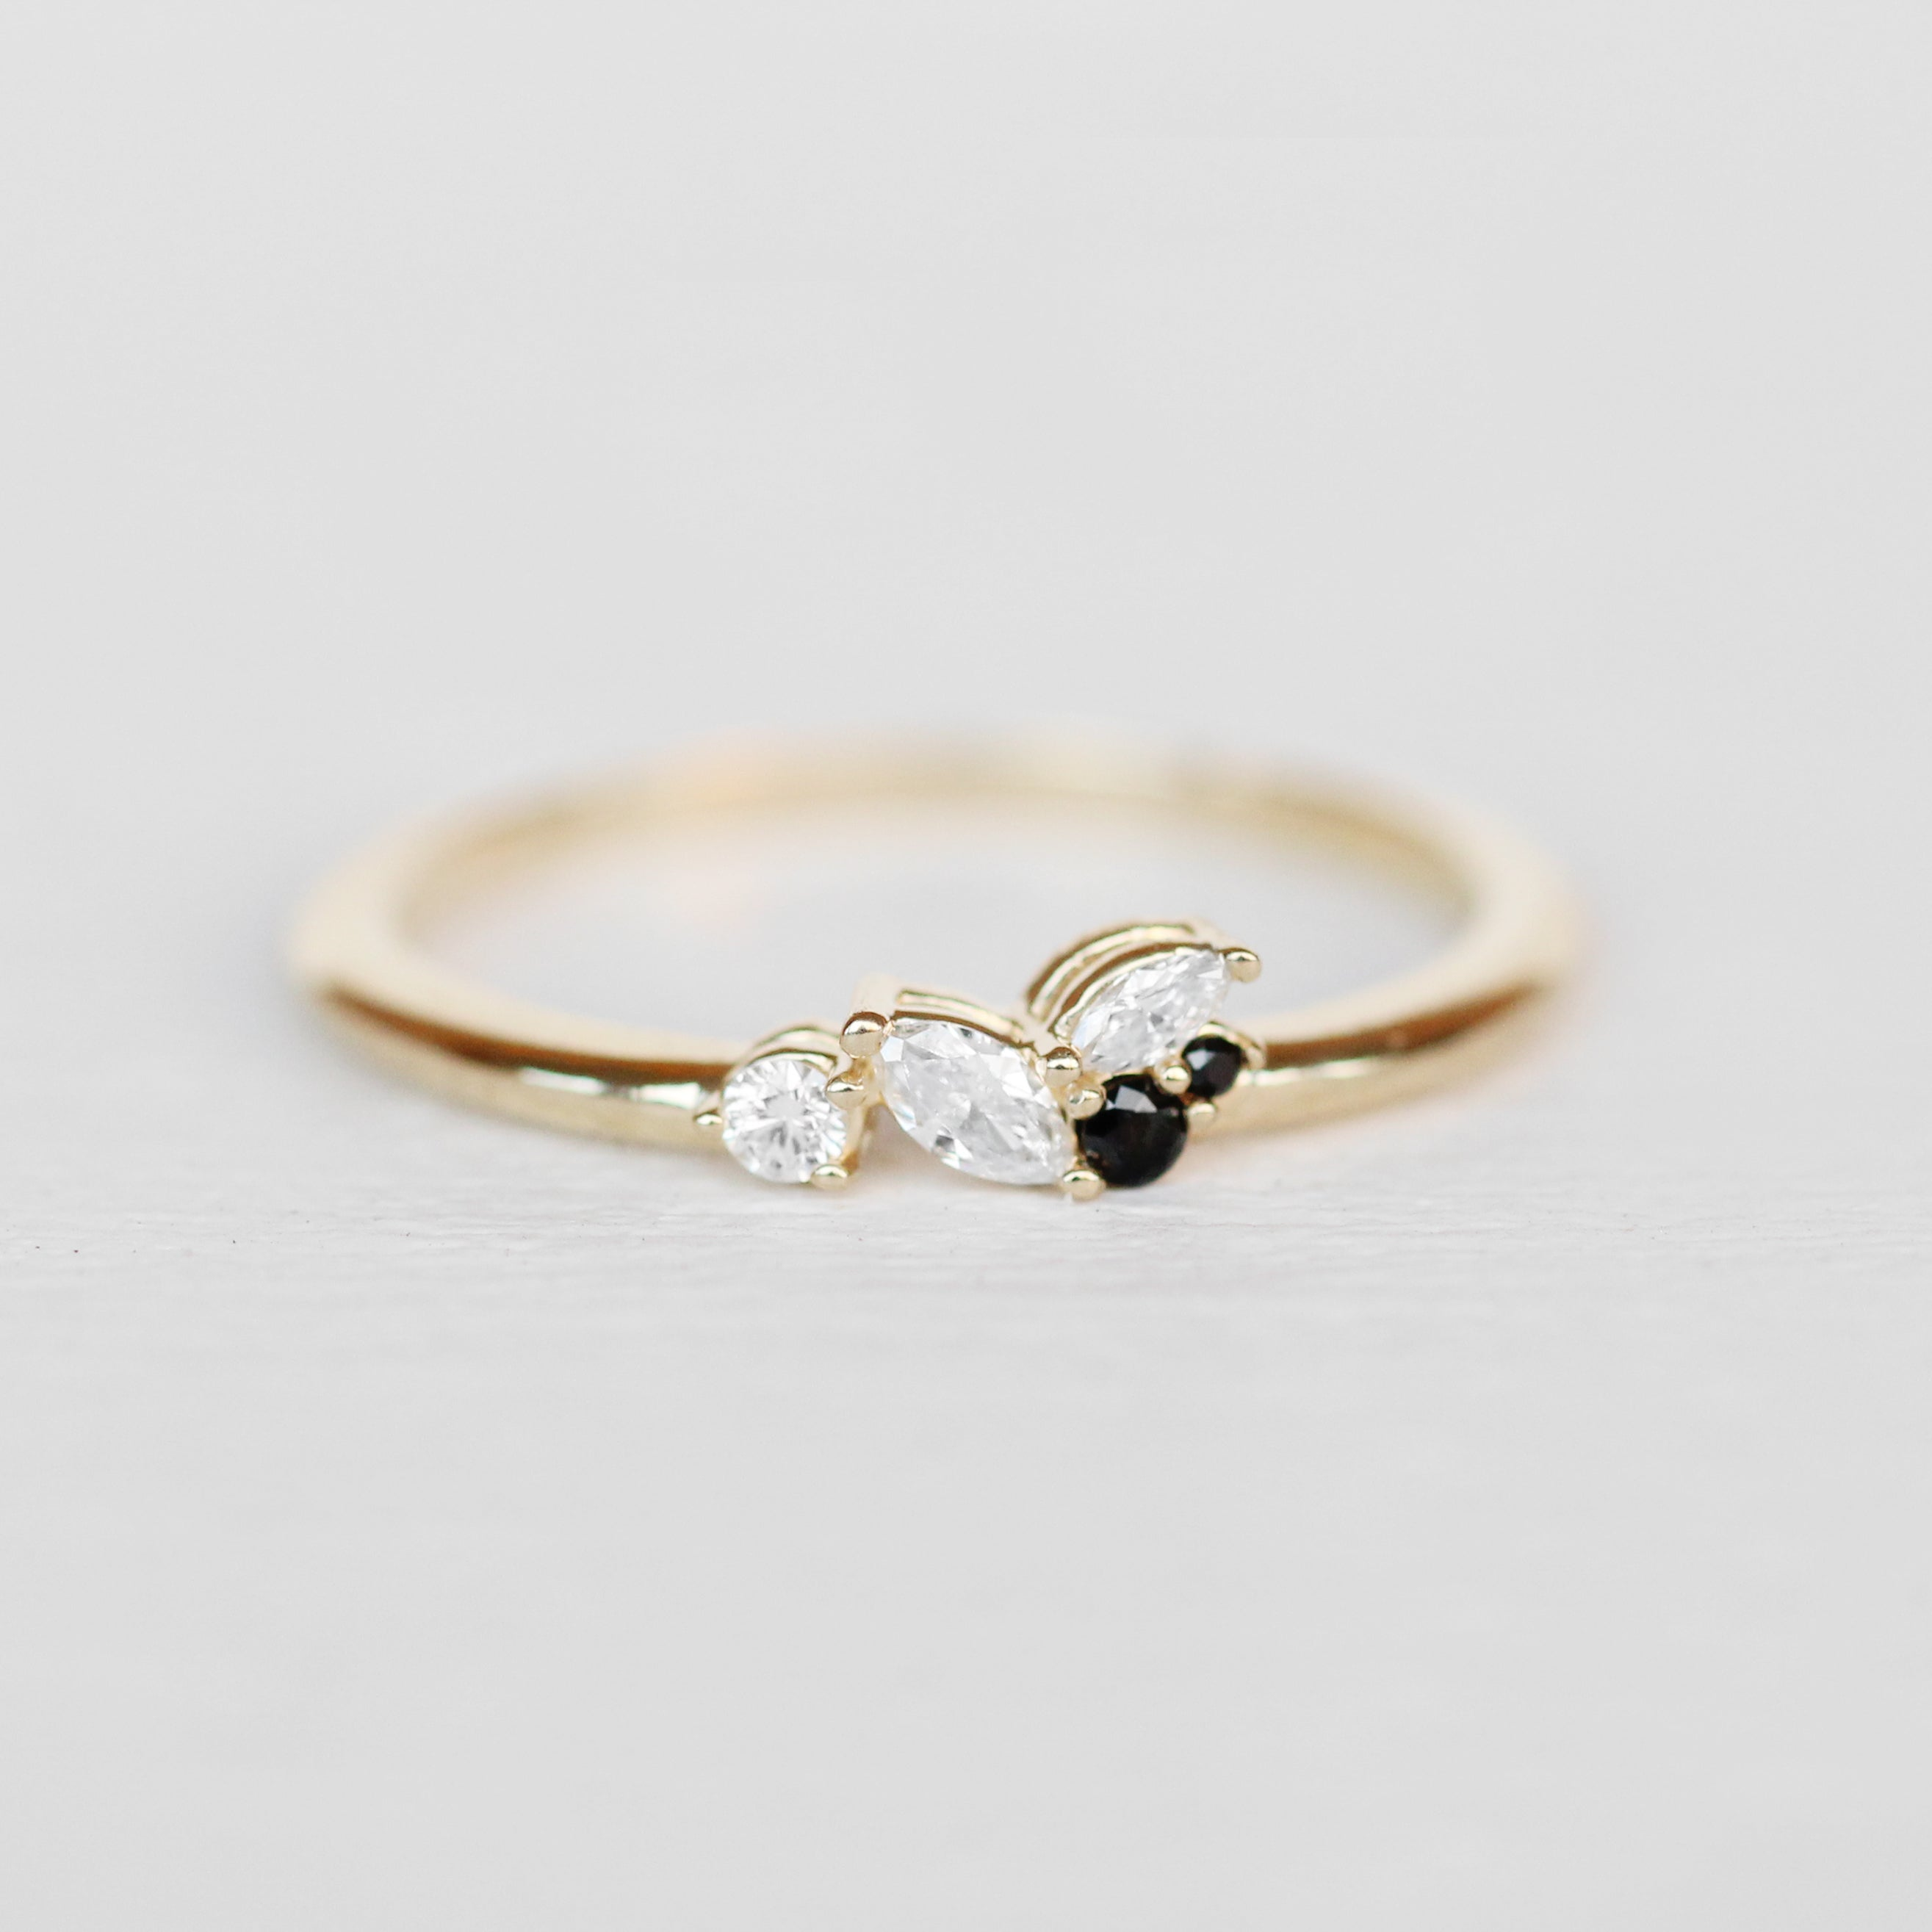 Anna Cluster Stackable or Wedding Ring - Your choice of metal - Custom - Celestial Diamonds ® by Midwinter Co.